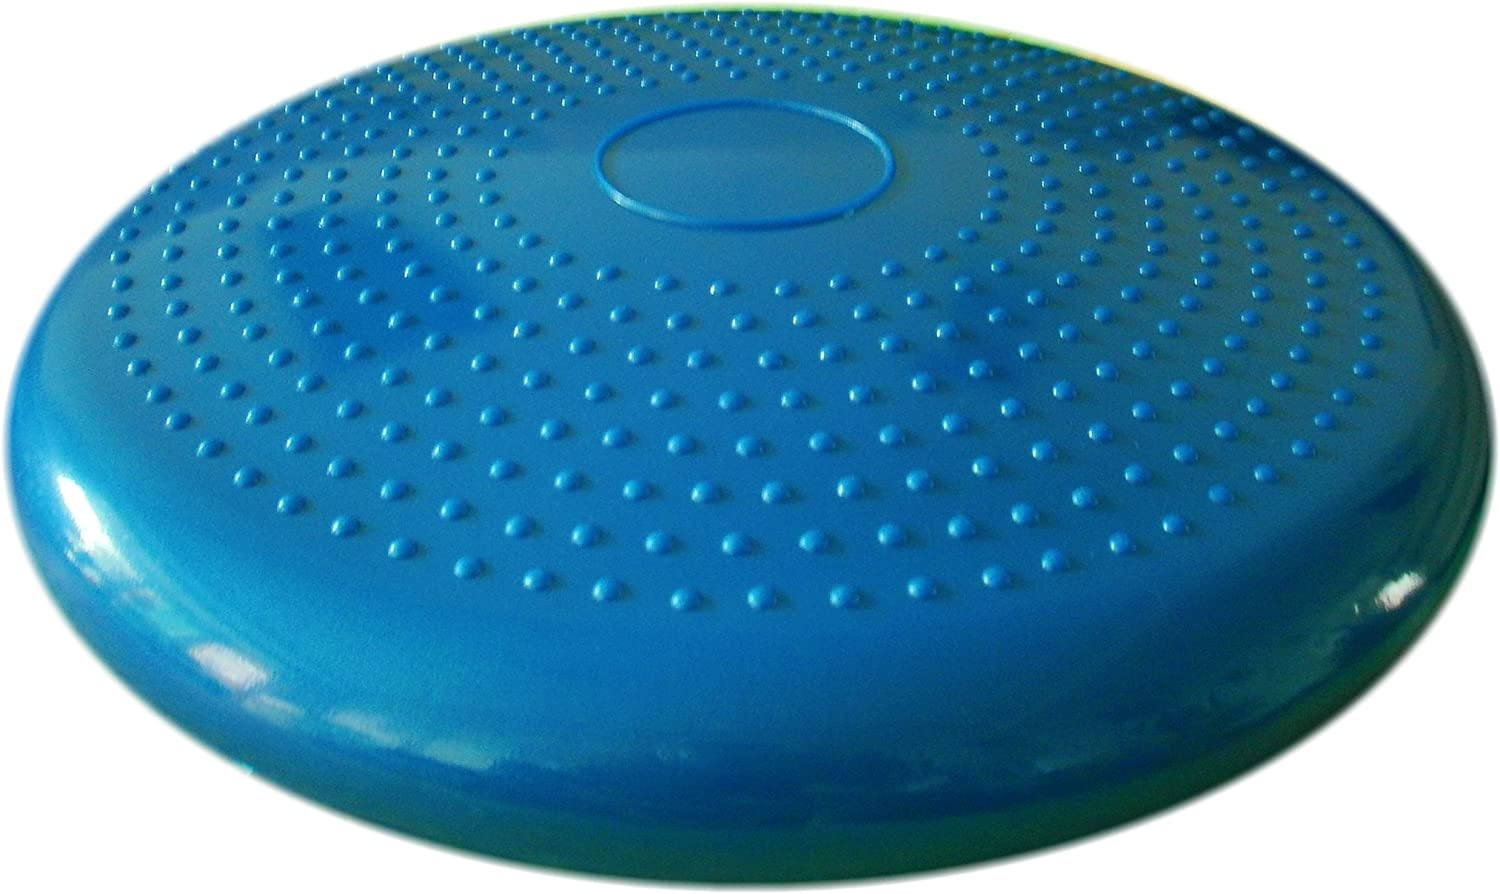 AppleRound Air Stability Wobble Cushion, Blue, 35cm 14in Diameter, Balance Disc, Pump Included